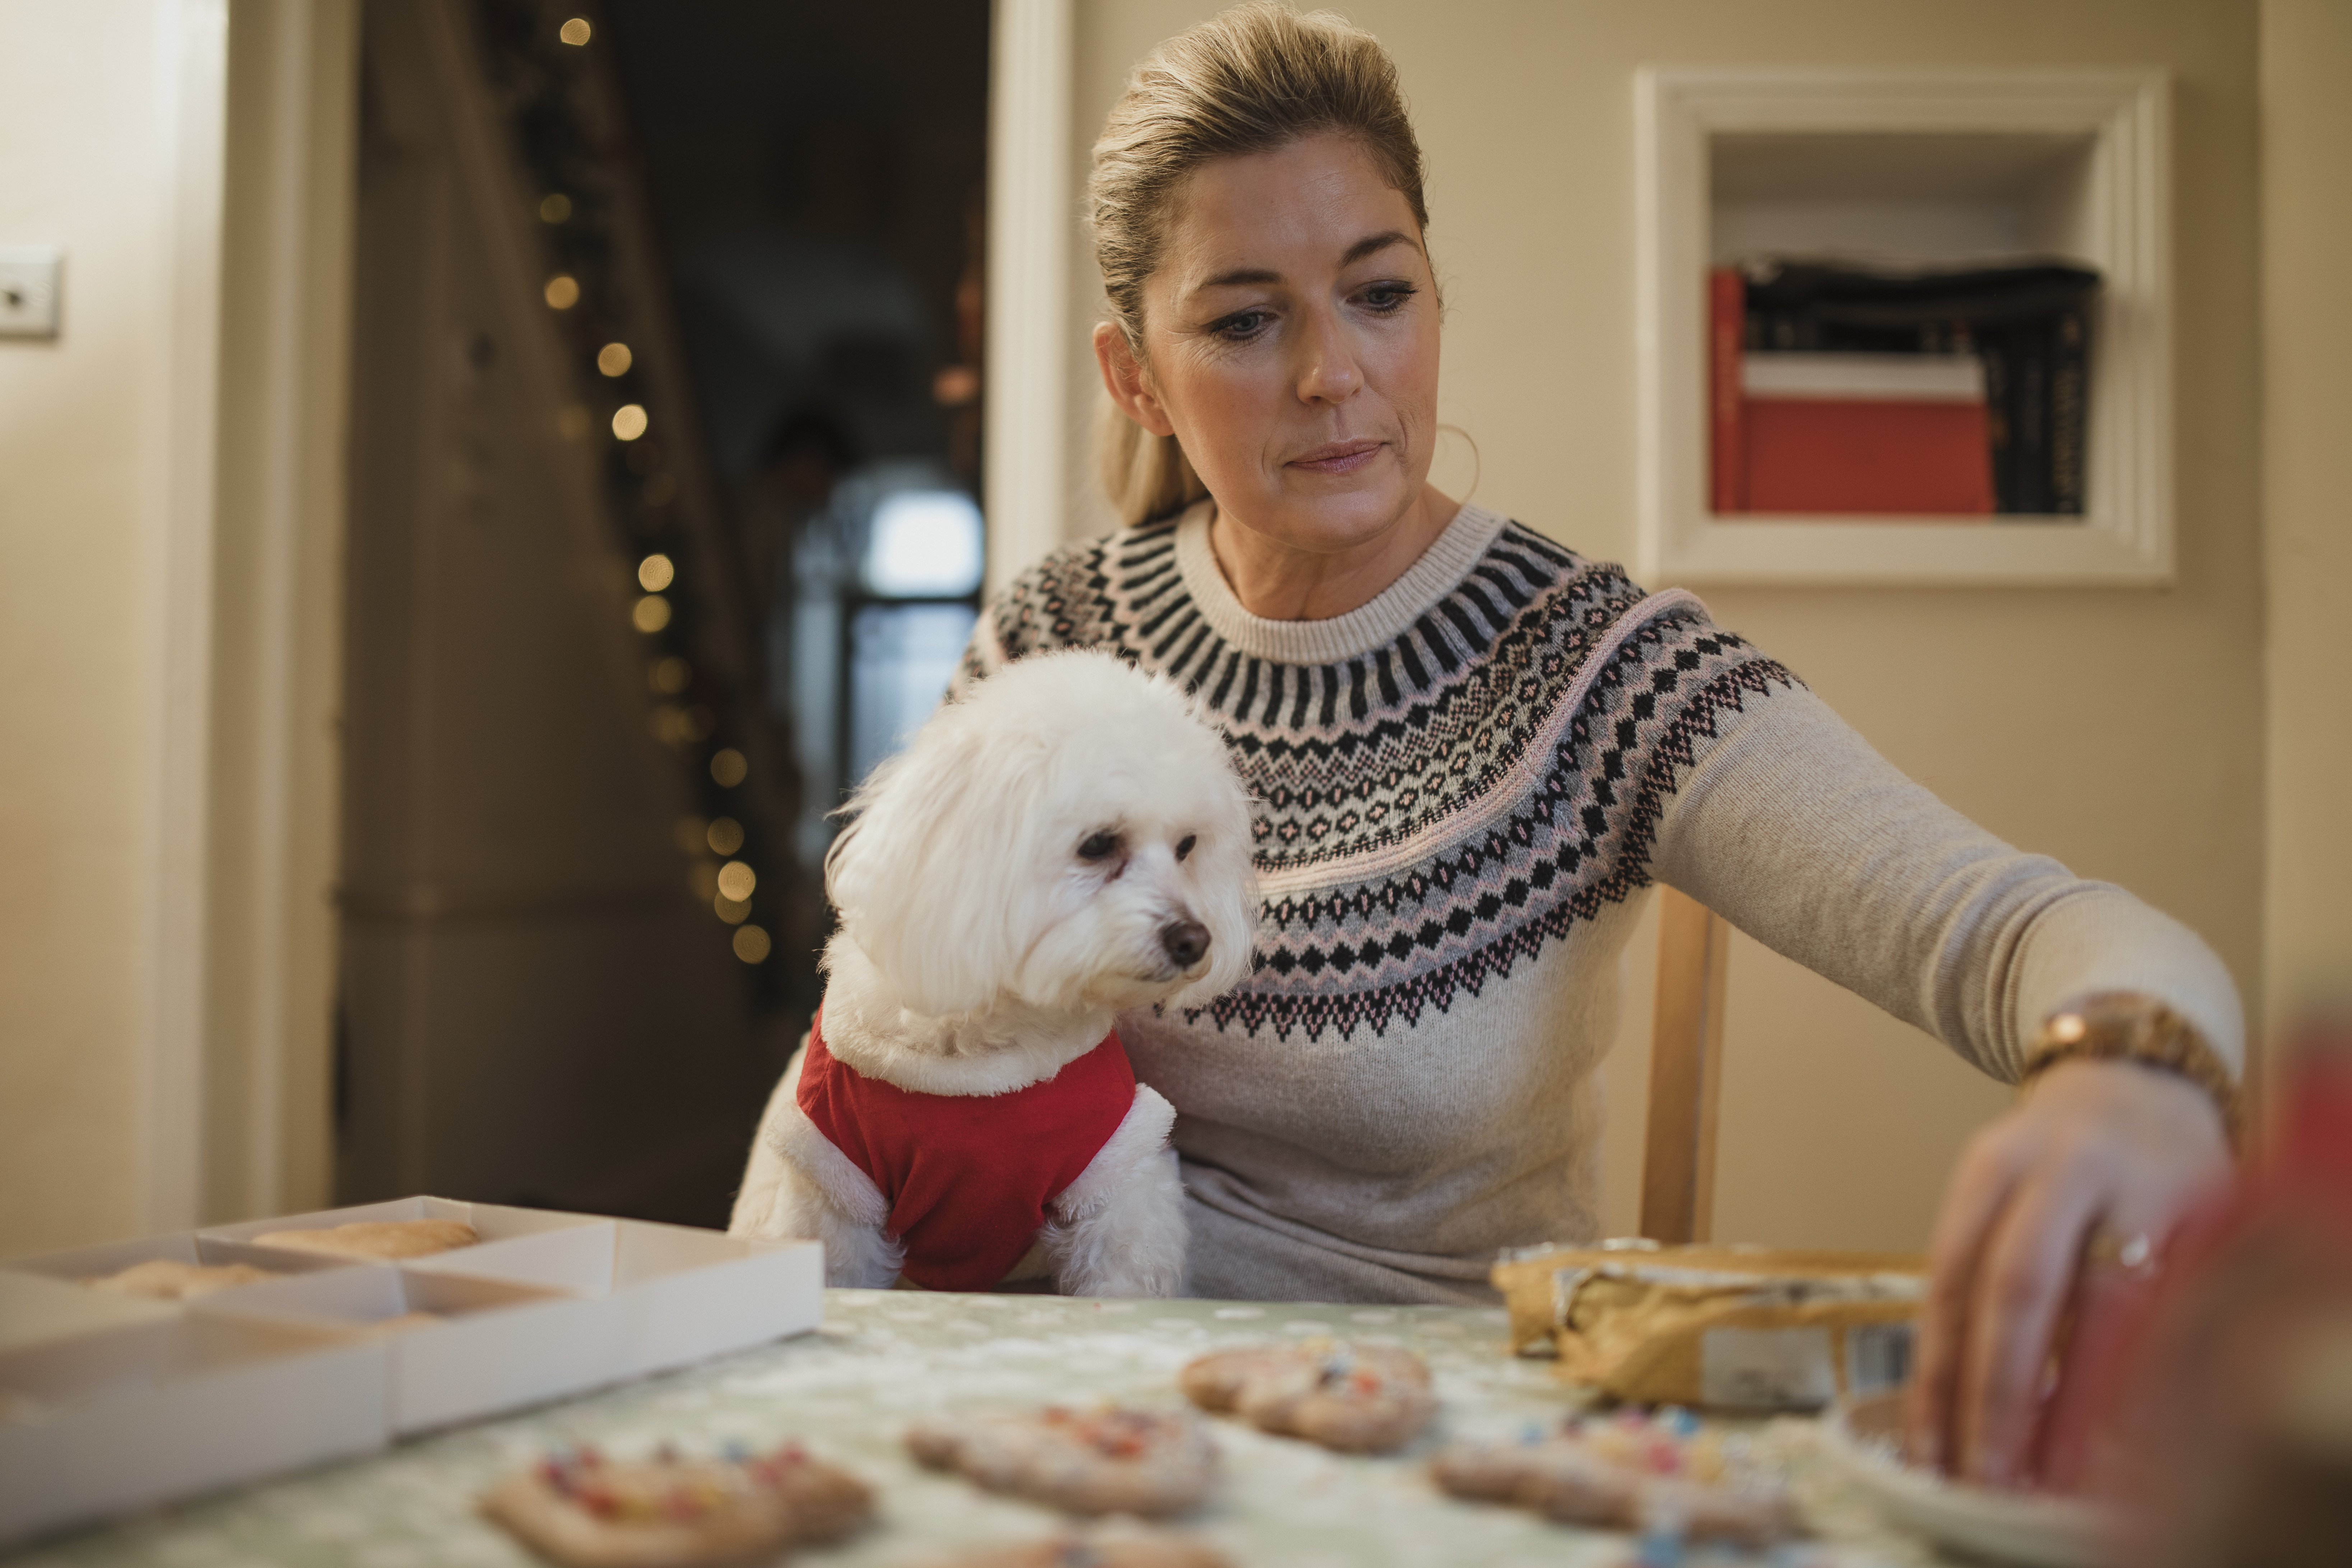 Mature woman is decorating homemade christmas cookies in the kitchen of her home. Her pet dog is sitting on her knee wearing a christmas jumper.